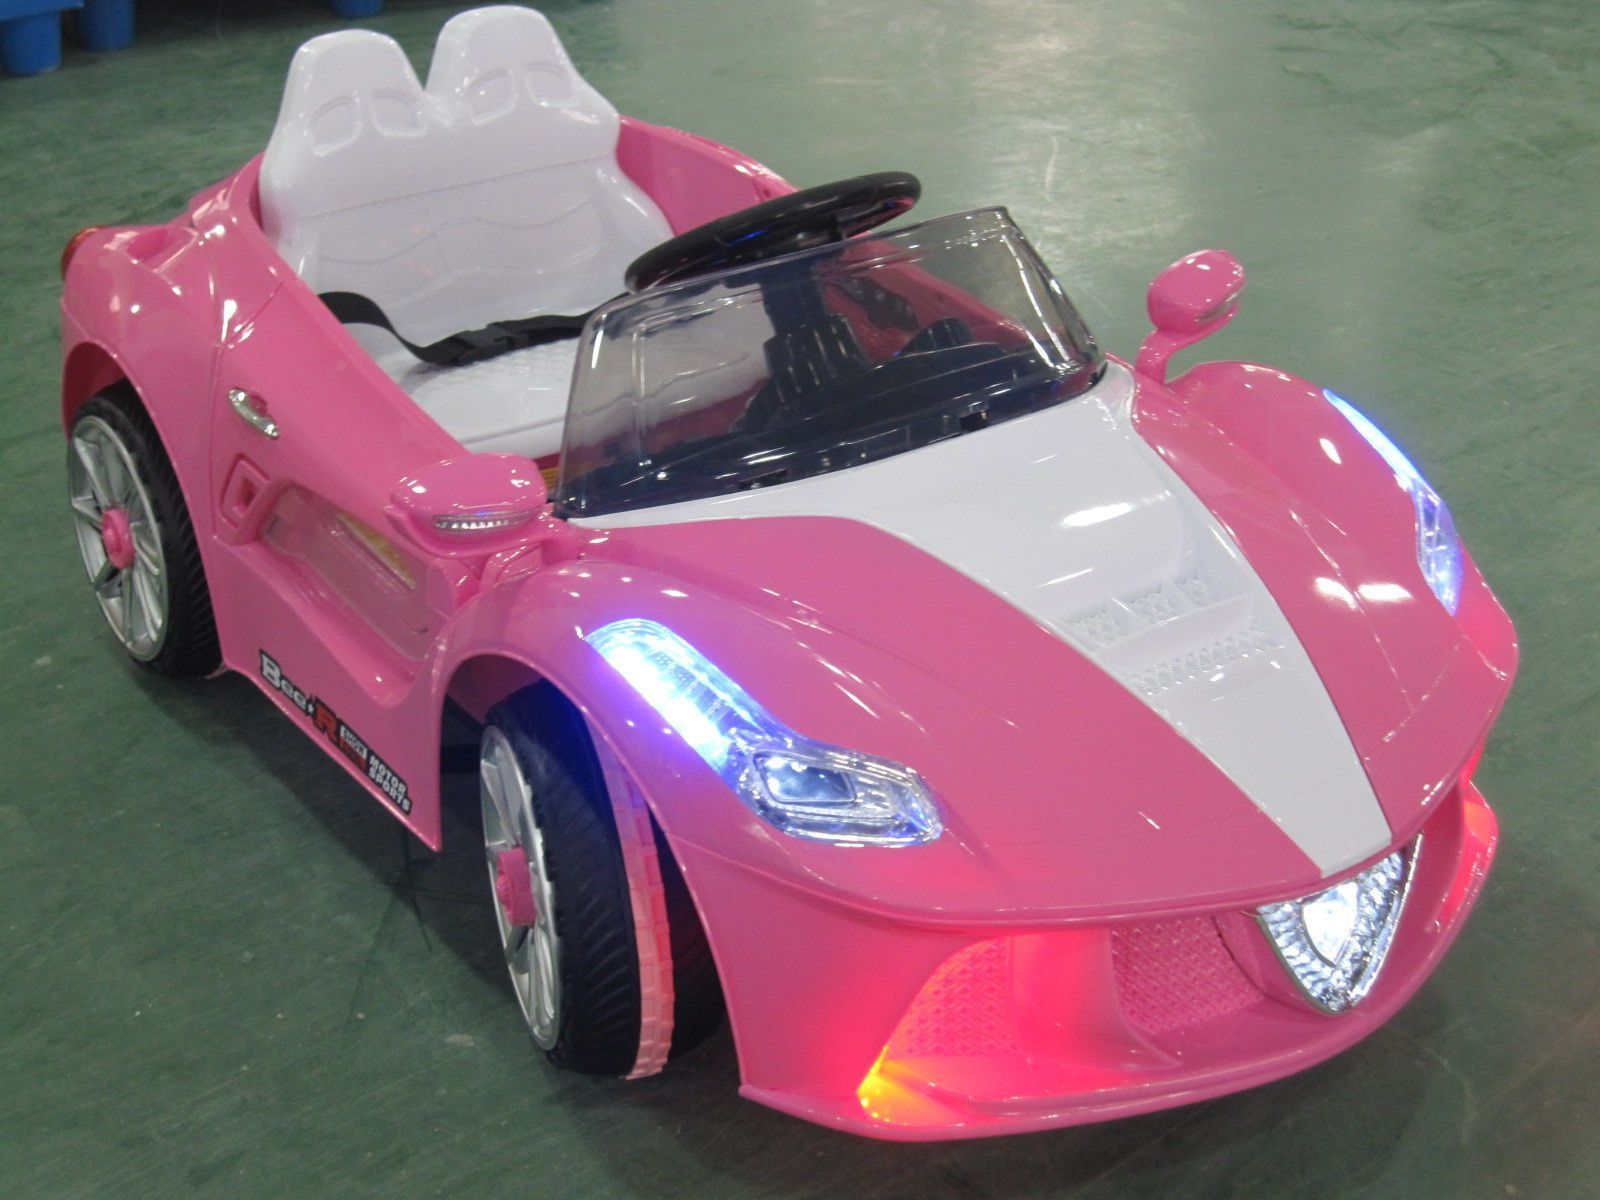 653 Best Pink Rides Images On Pinterest Pink Cars Pink Pink